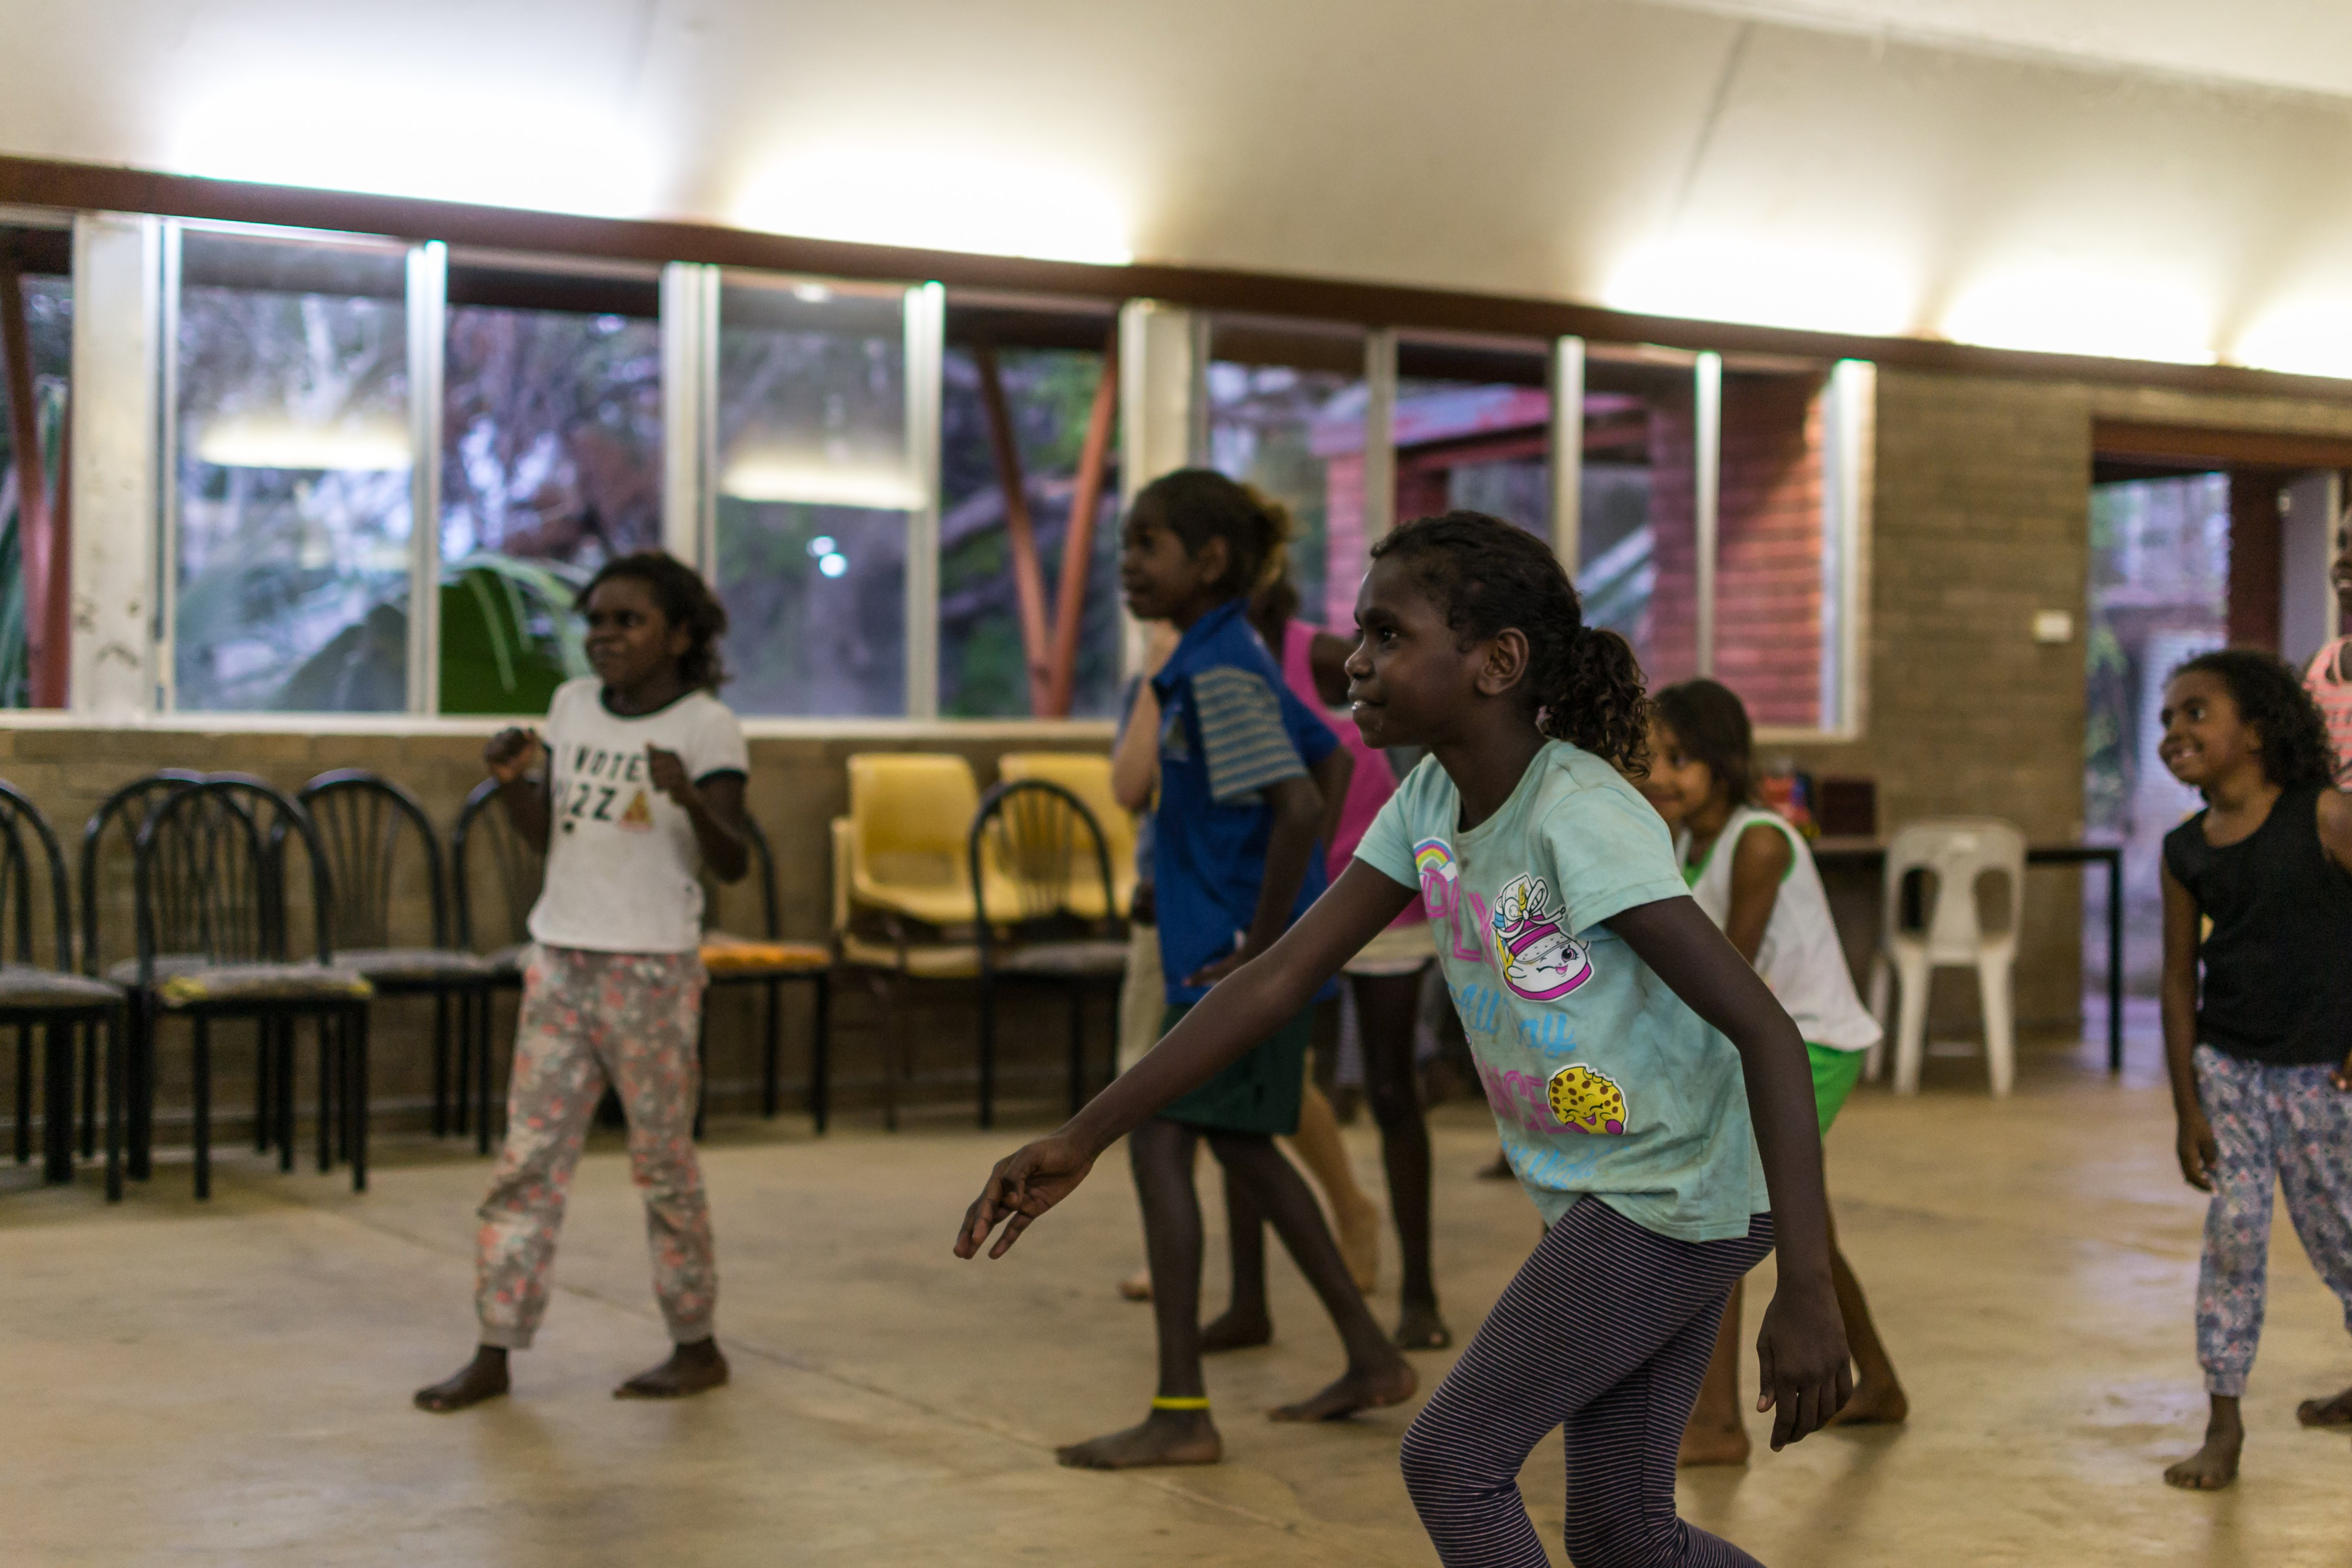 Kids play 'Red Light, Green Light' at Kids Club, Barunga